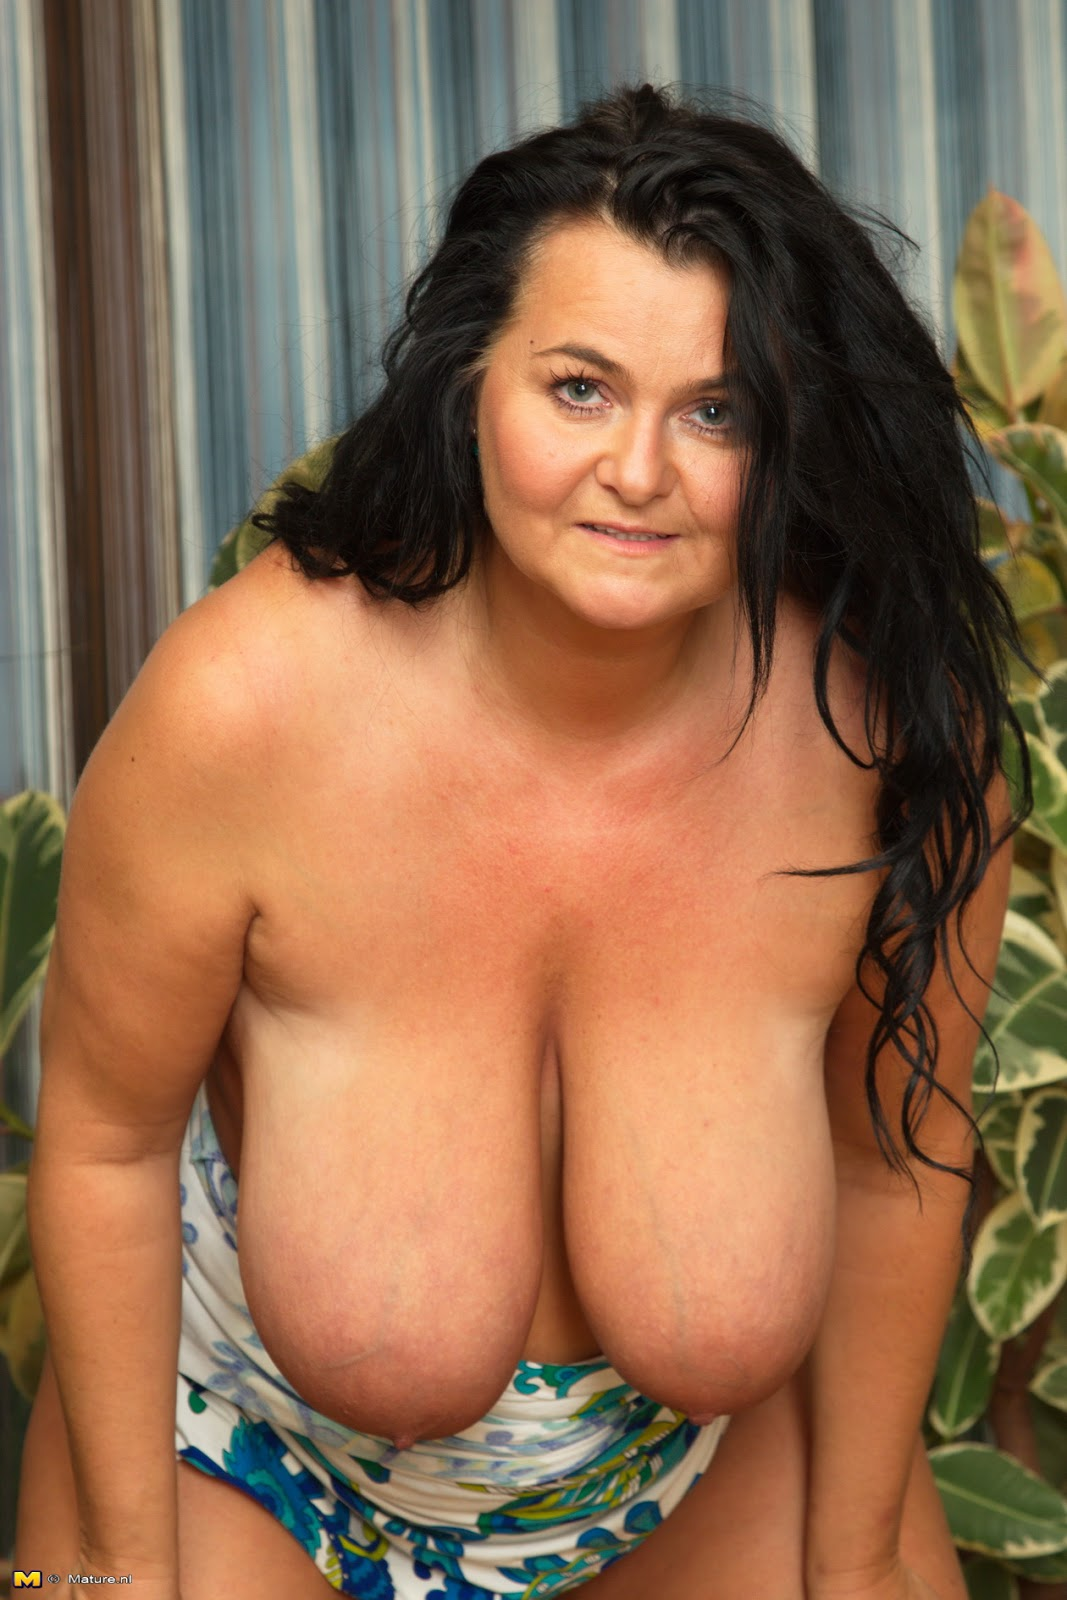 Images of Big Breasted Mature Women - Amateur Adult Gallery